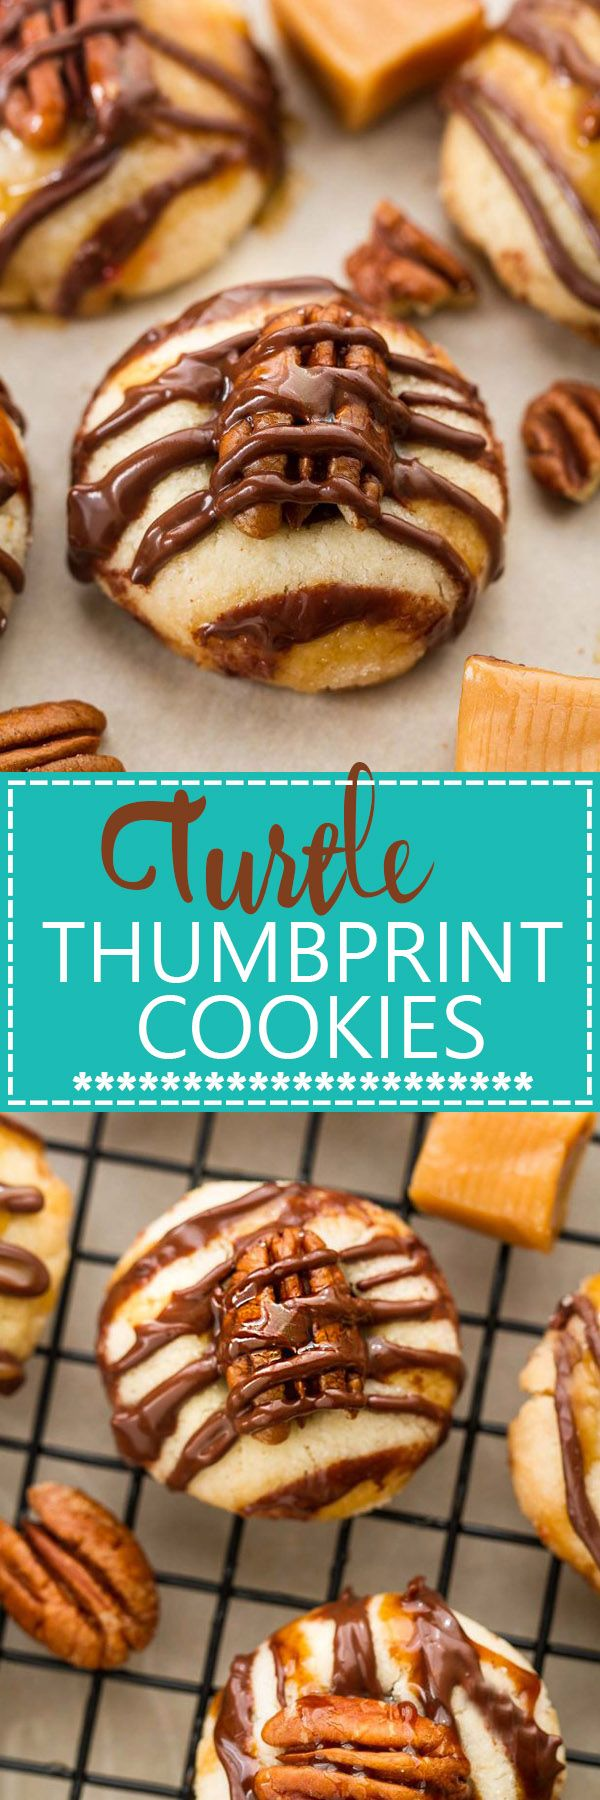 Pecan Turtle Shortbread Thumbprint Cookies make the perfect holiday treat for your Christmas cookie platter. Best of all, they're so easy to make and are full of creamy caramel, chocolate and a crunchy pecan center.